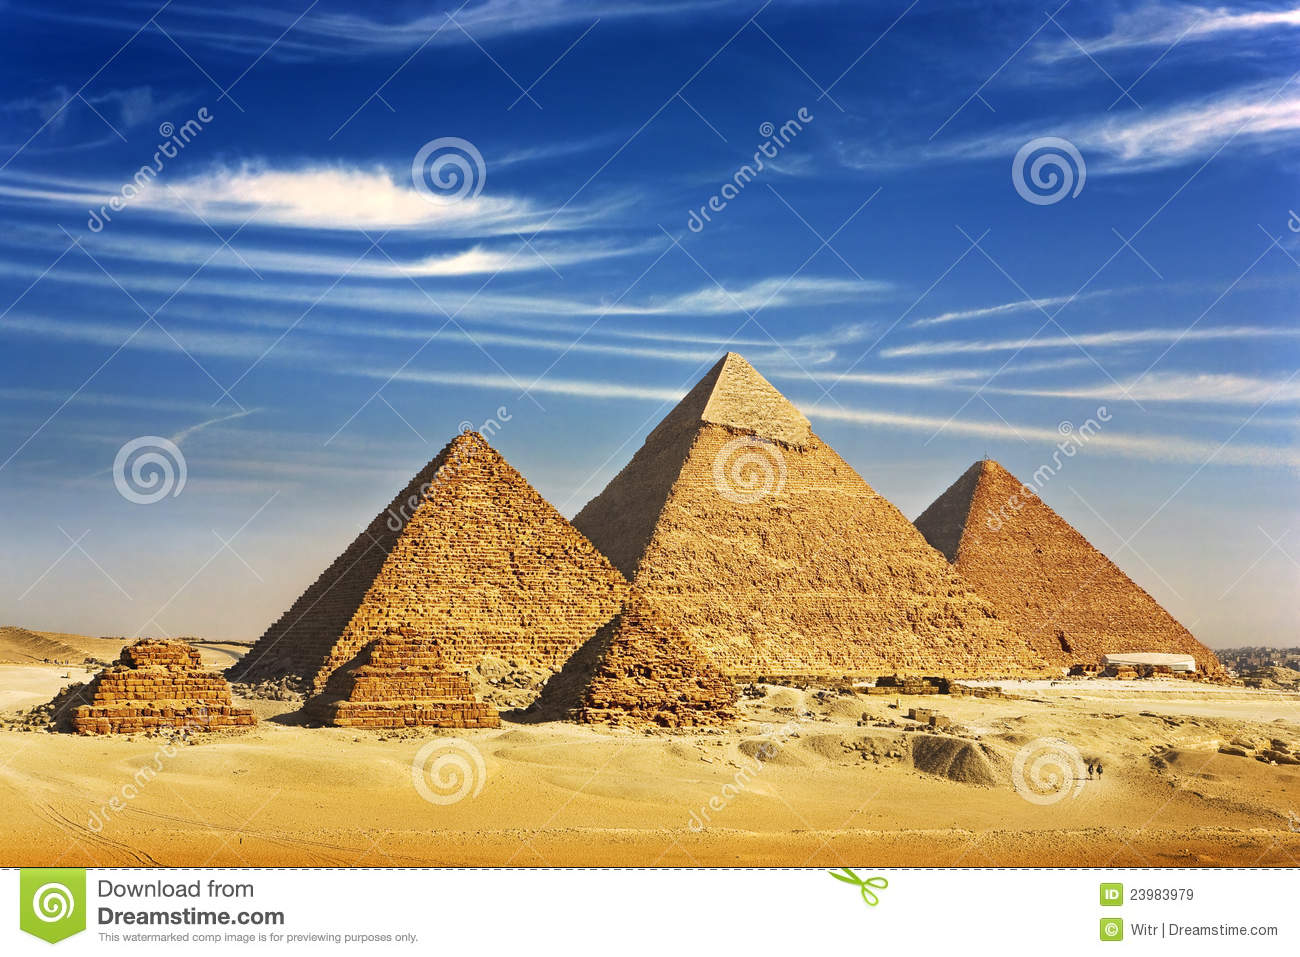 The Pyramids of Giza stock image  Image of mykerinos - 23983979